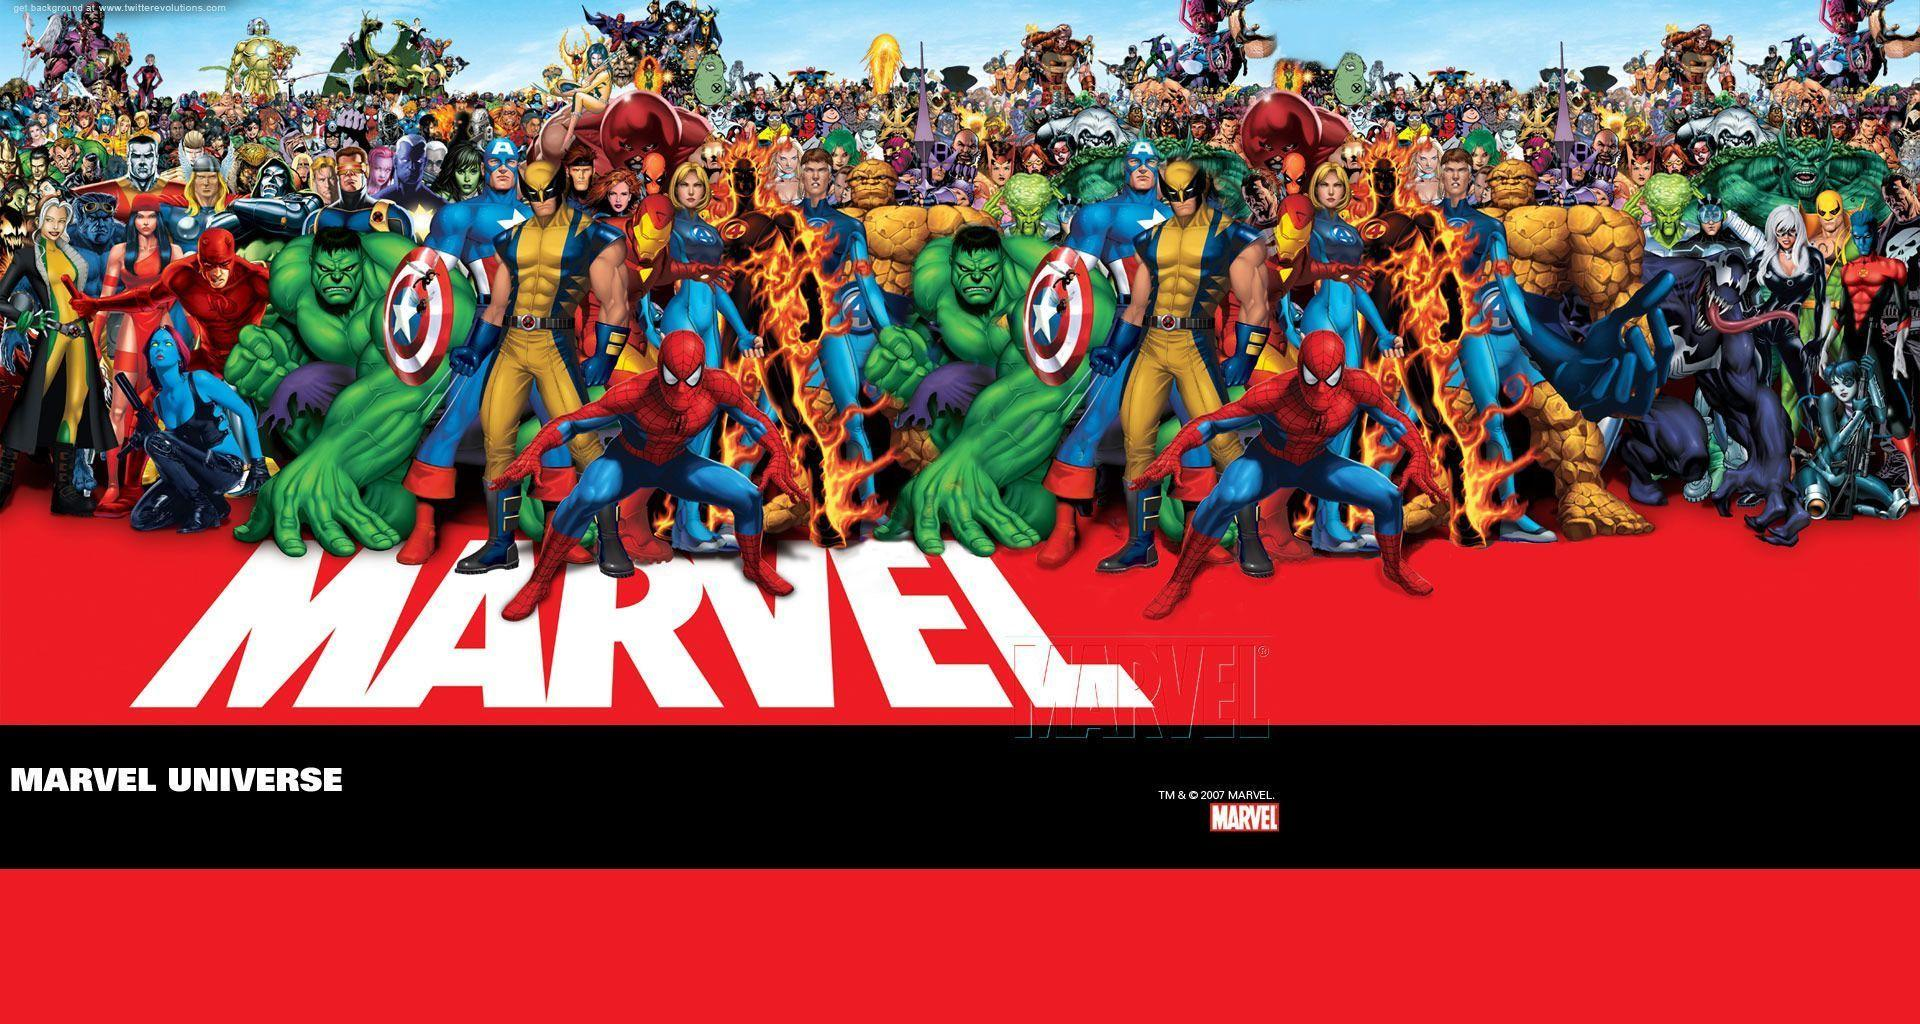 marvel single parent personals Marvel's best 100% free dating site for single parents join our online community of colorado single parents and meet people like you through our free marvel single parent personal ads and online chat rooms.